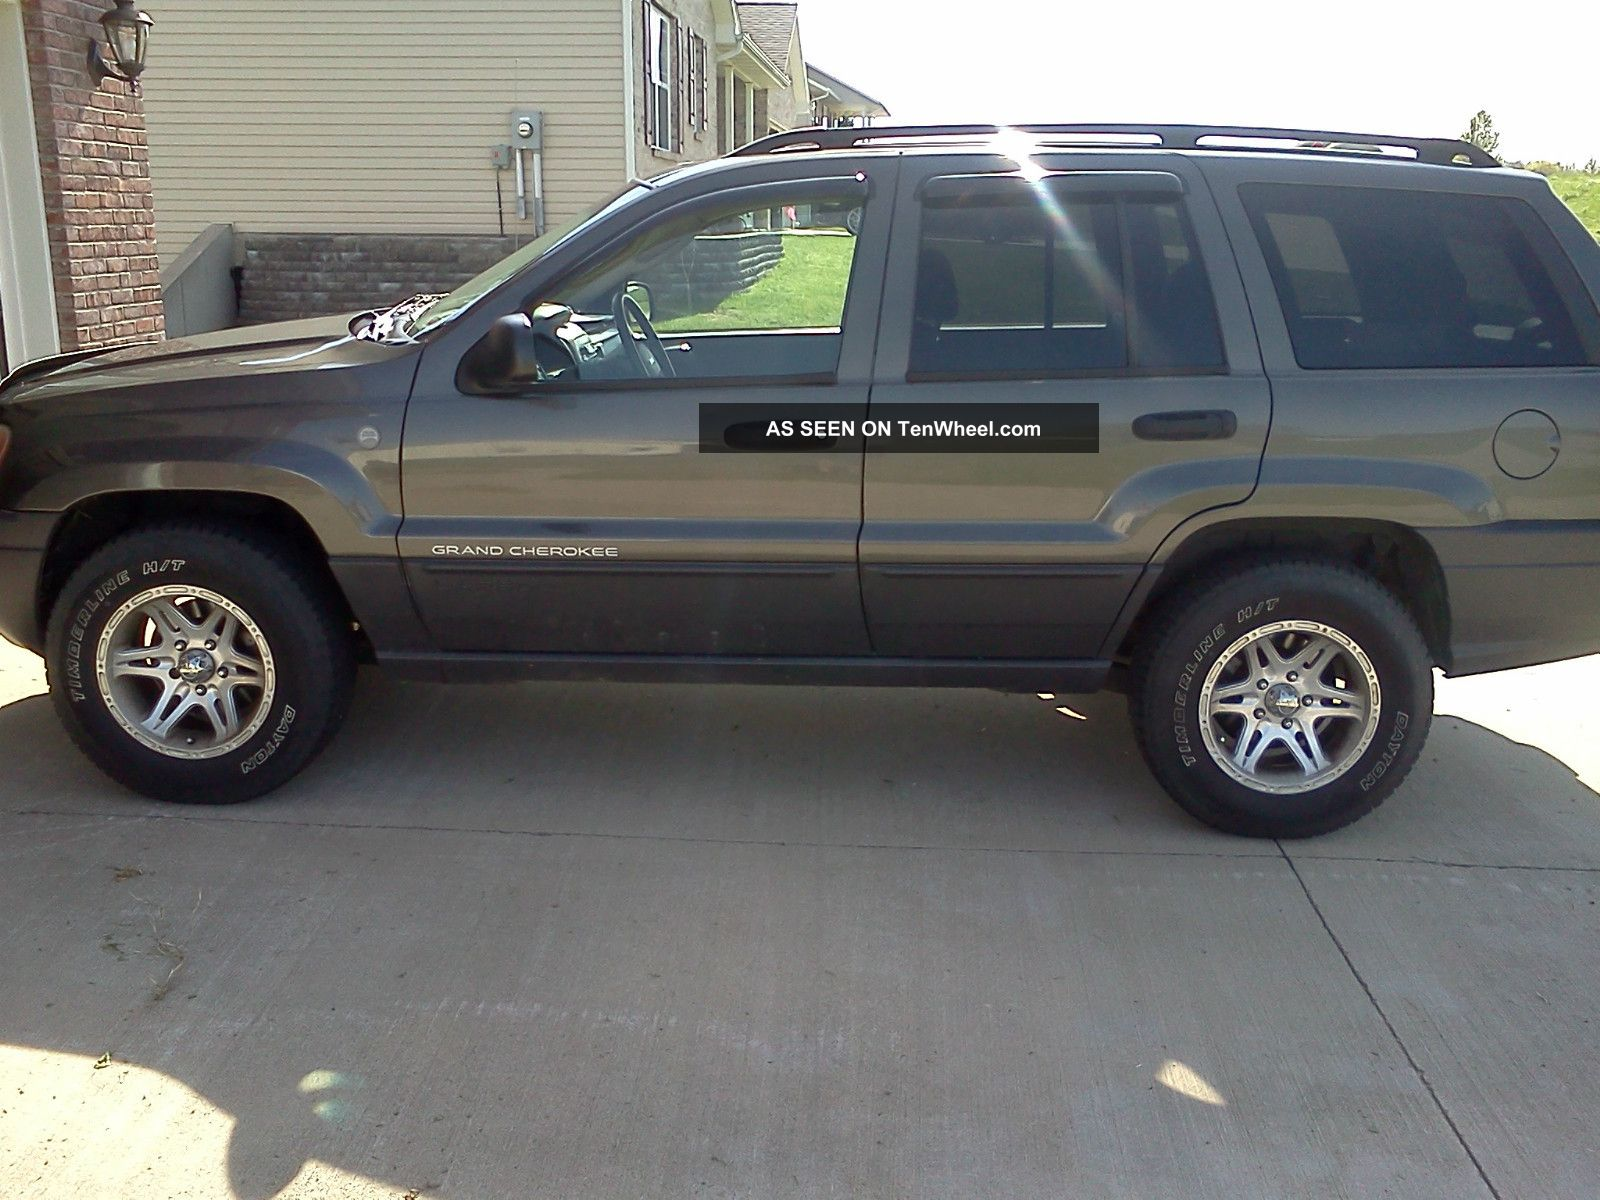 2004 Jeep Grand Cherokee Laredo Trail Rated 4x4 Grand Cherokee photo